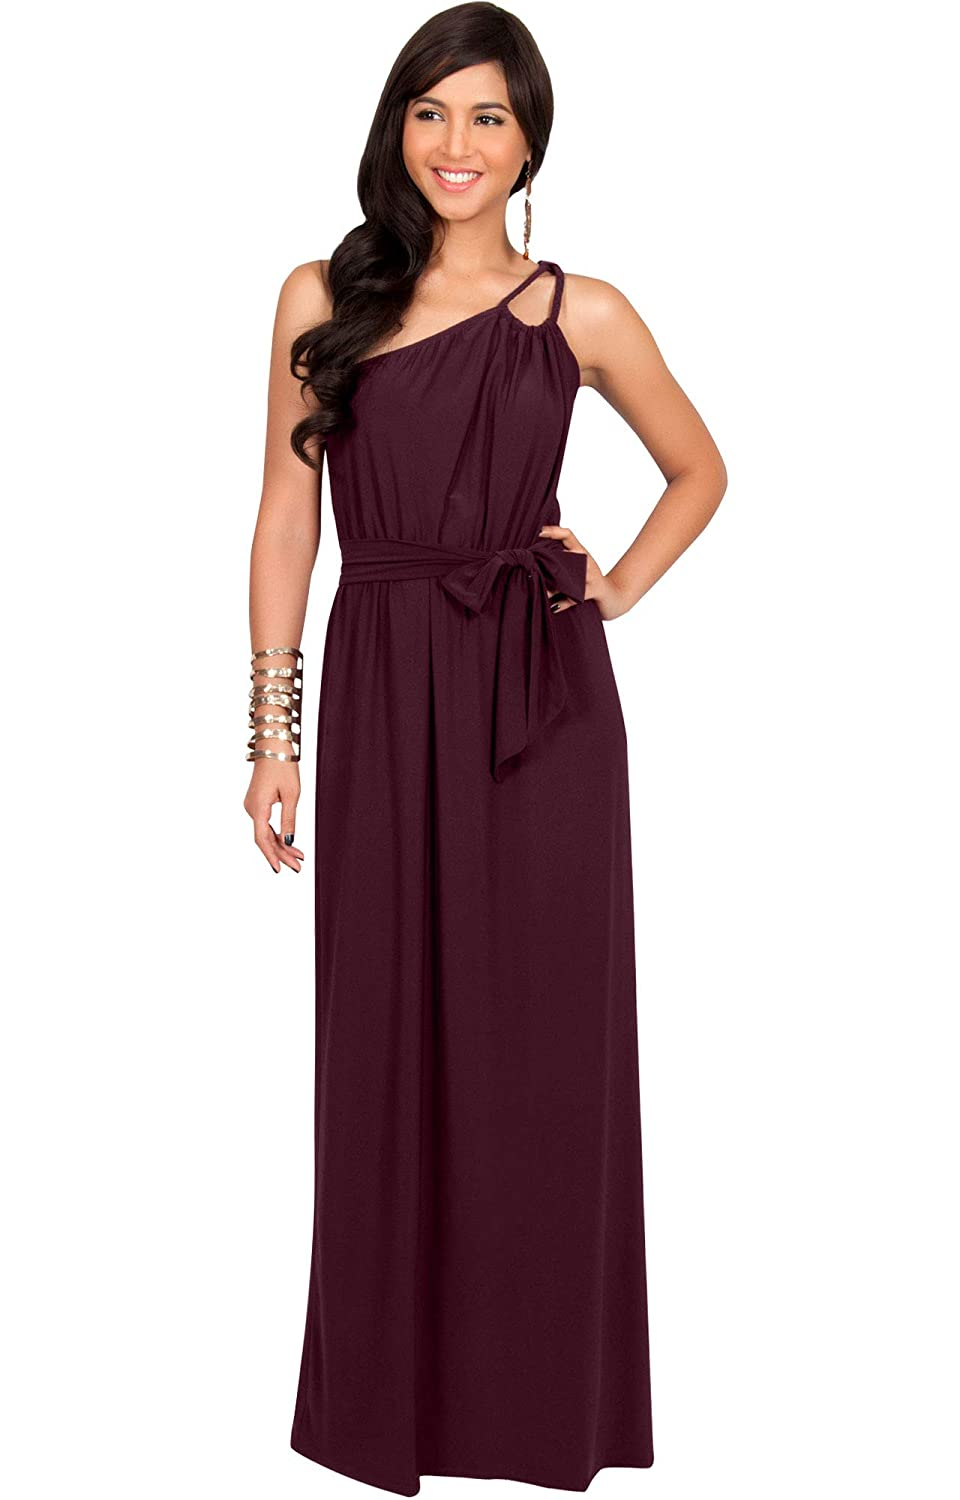 70s Prom, Formal, Evening, Party Dresses KOH KOH Womens Long Sleeveless One Shoulder Evening Summer Bridesmaid Maxi Dress $49.95 AT vintagedancer.com